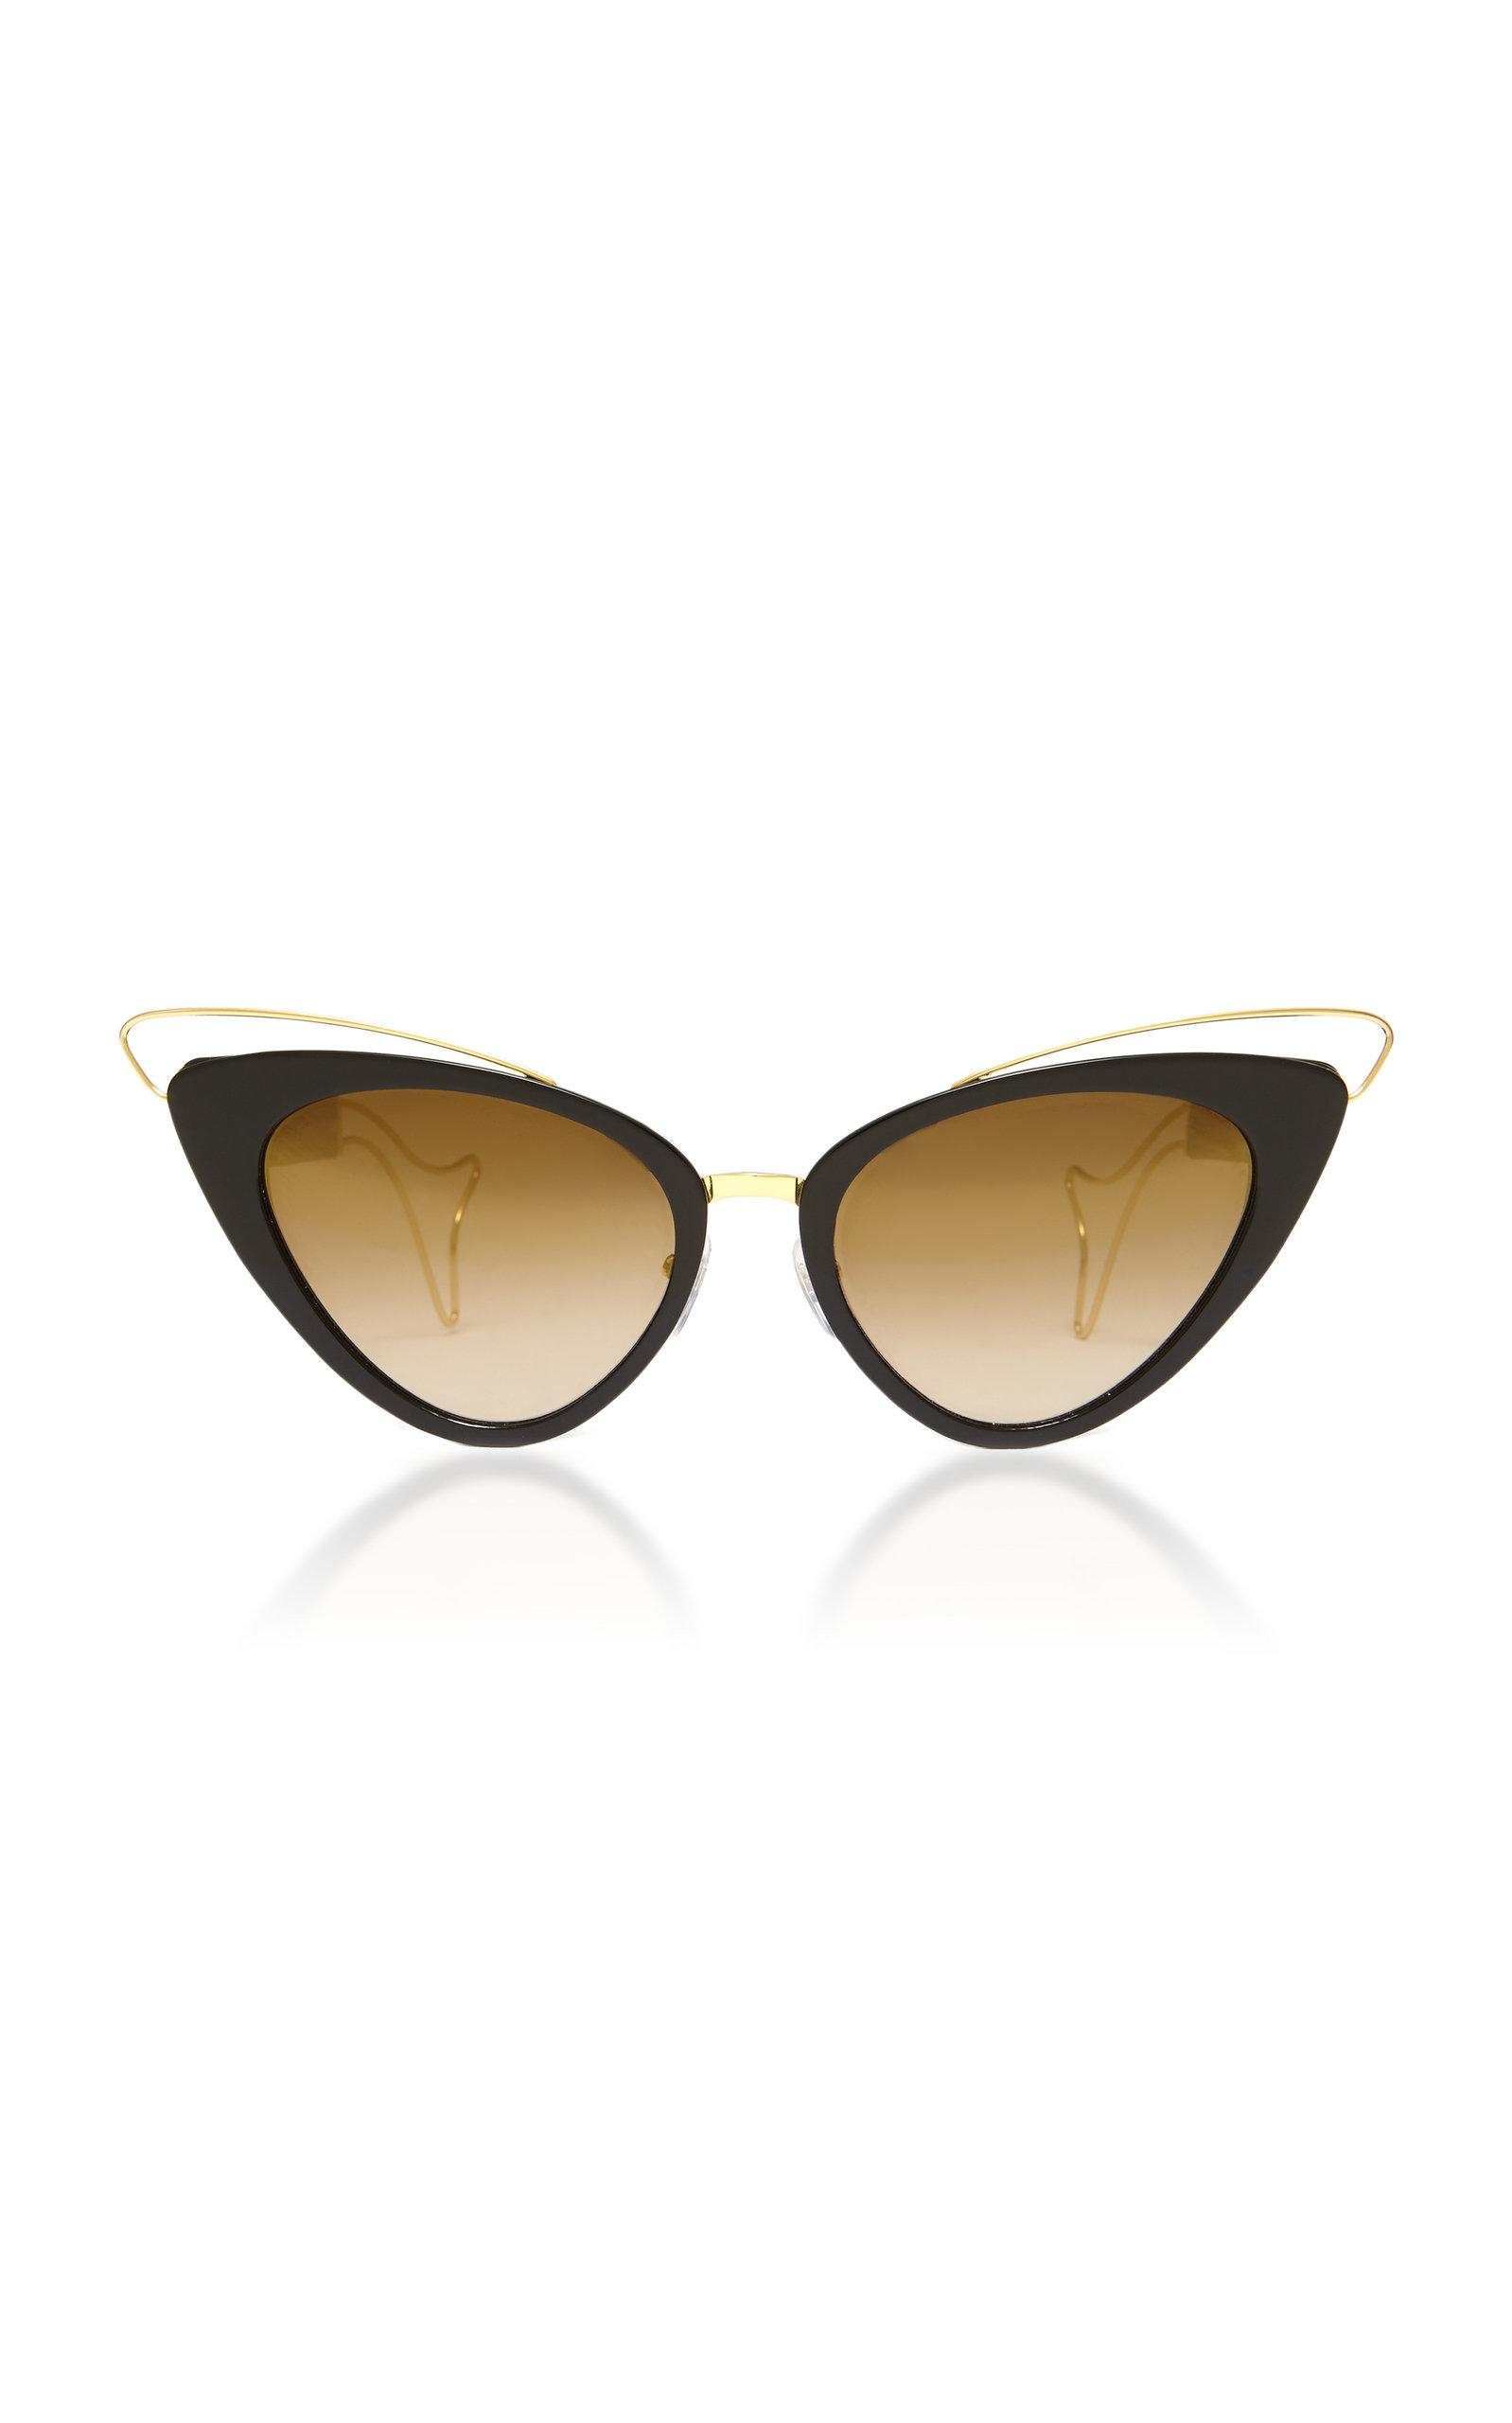 Philippe Chevallier Whale Cat Eye Sunglasses In Black